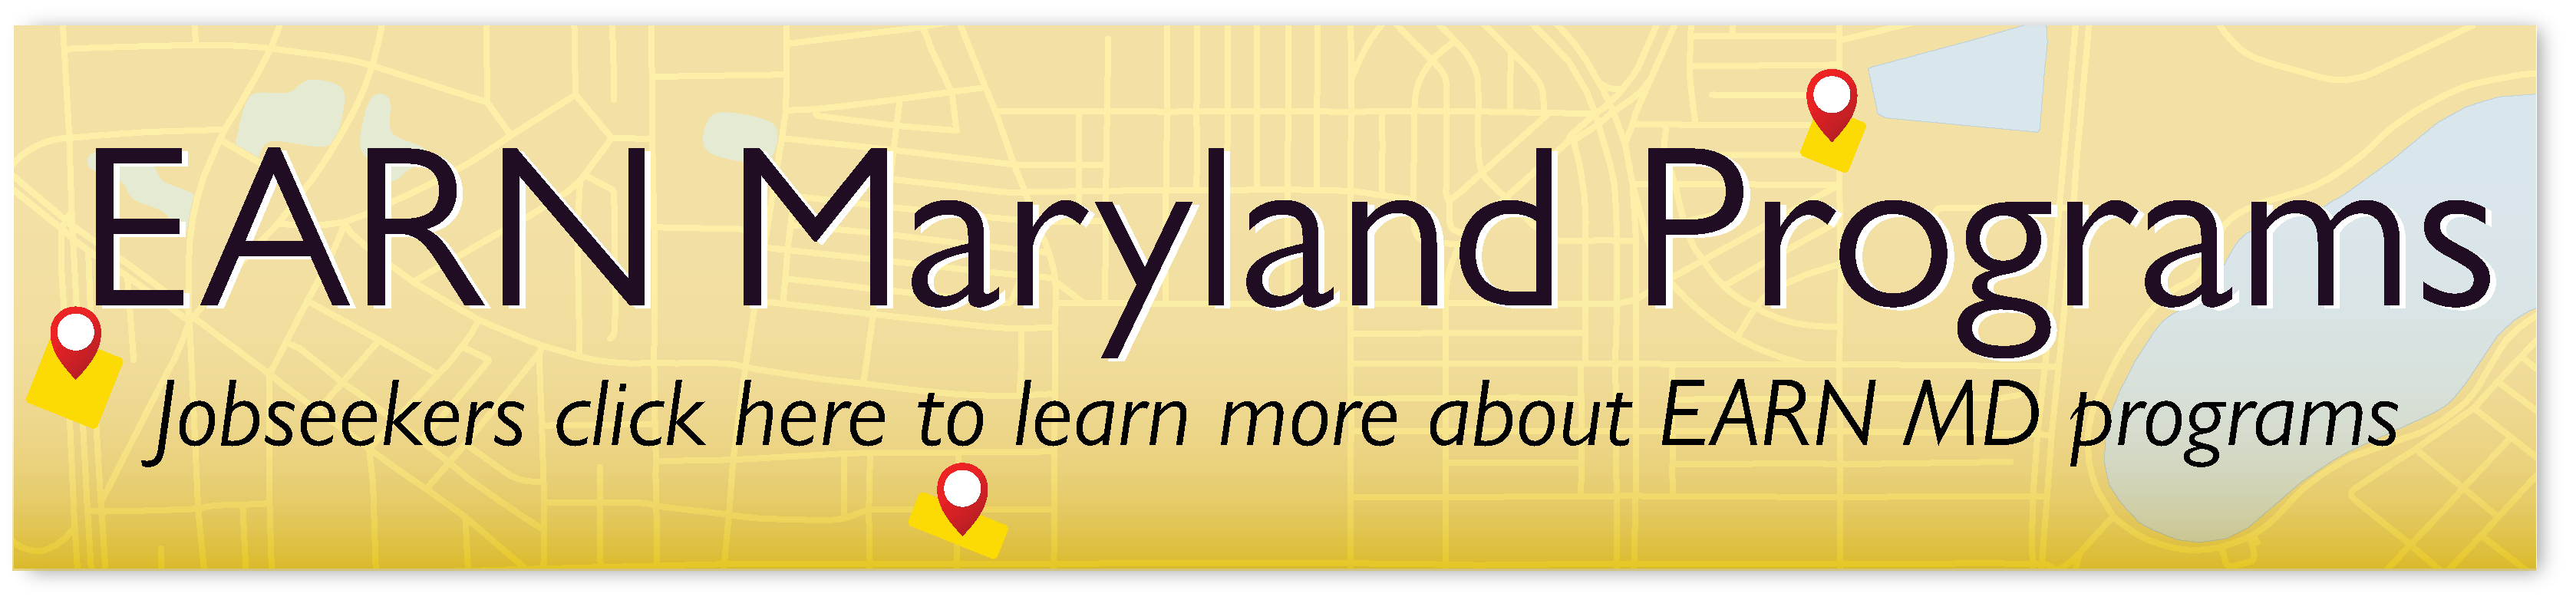 EARN Maryland programs